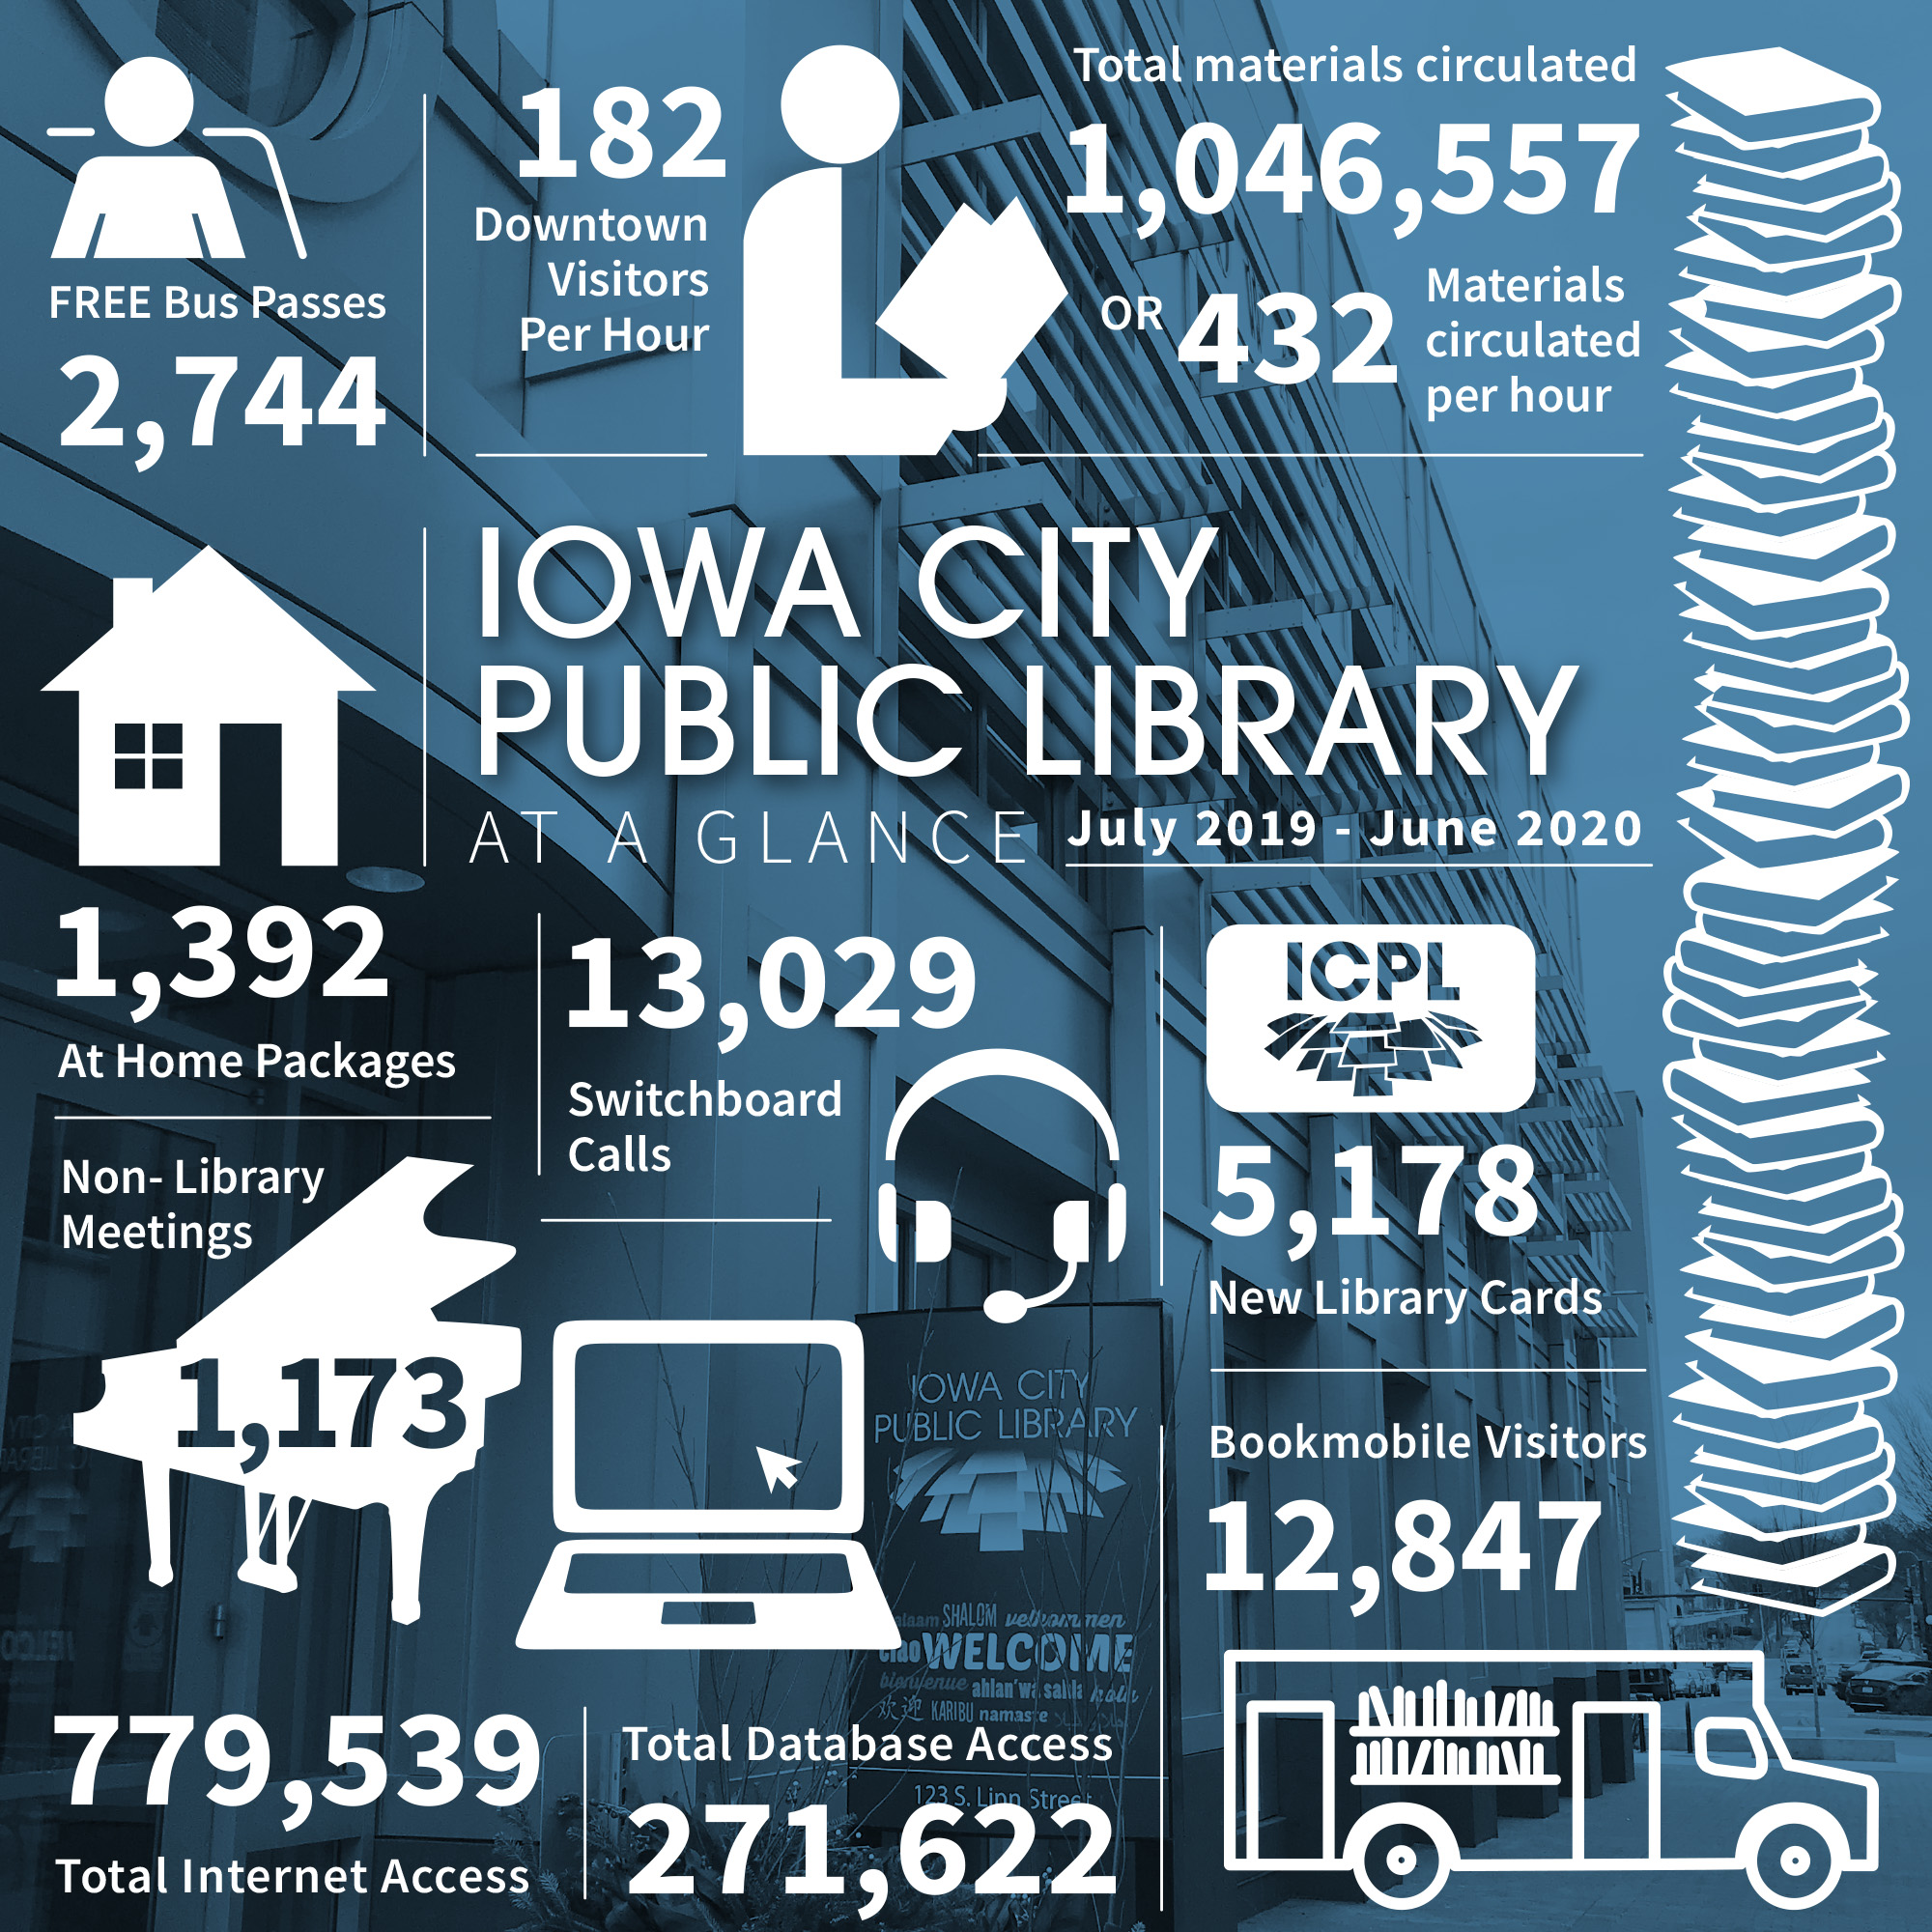 Iowa City Public Library at a glance